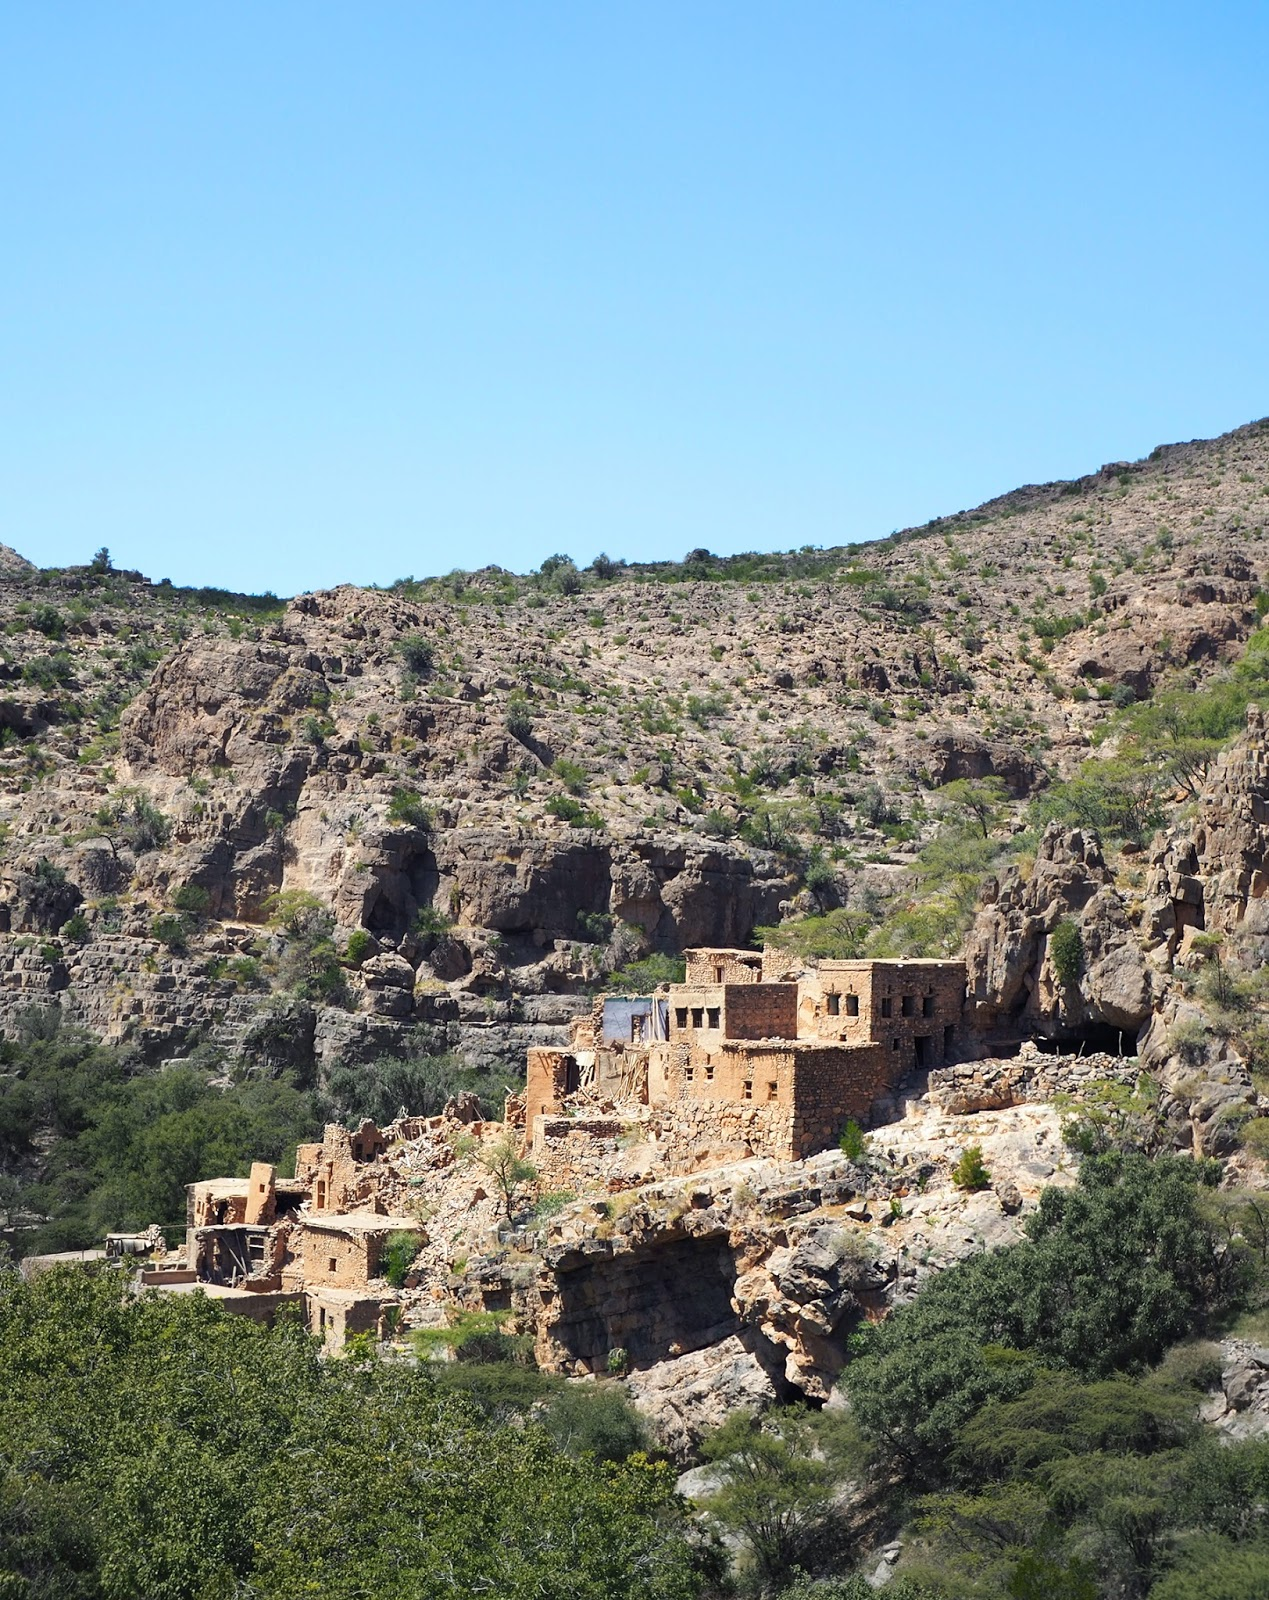 Euriental | luxury travel & style | Alila Jabal Akhdar village walk, Oman